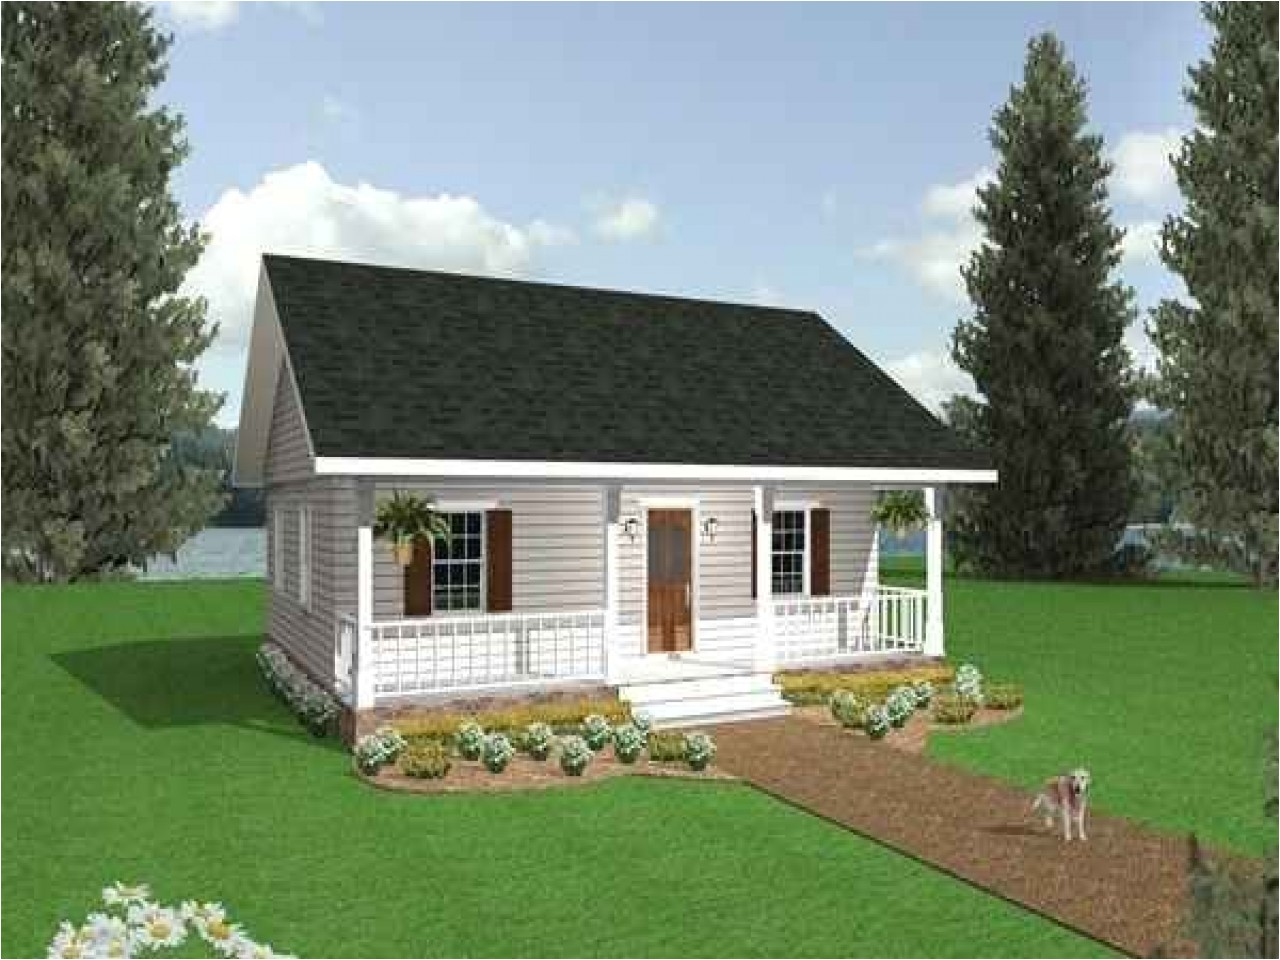 23c23e9ab908a1a3 small cottage cabin house plans small cabins tiny houses